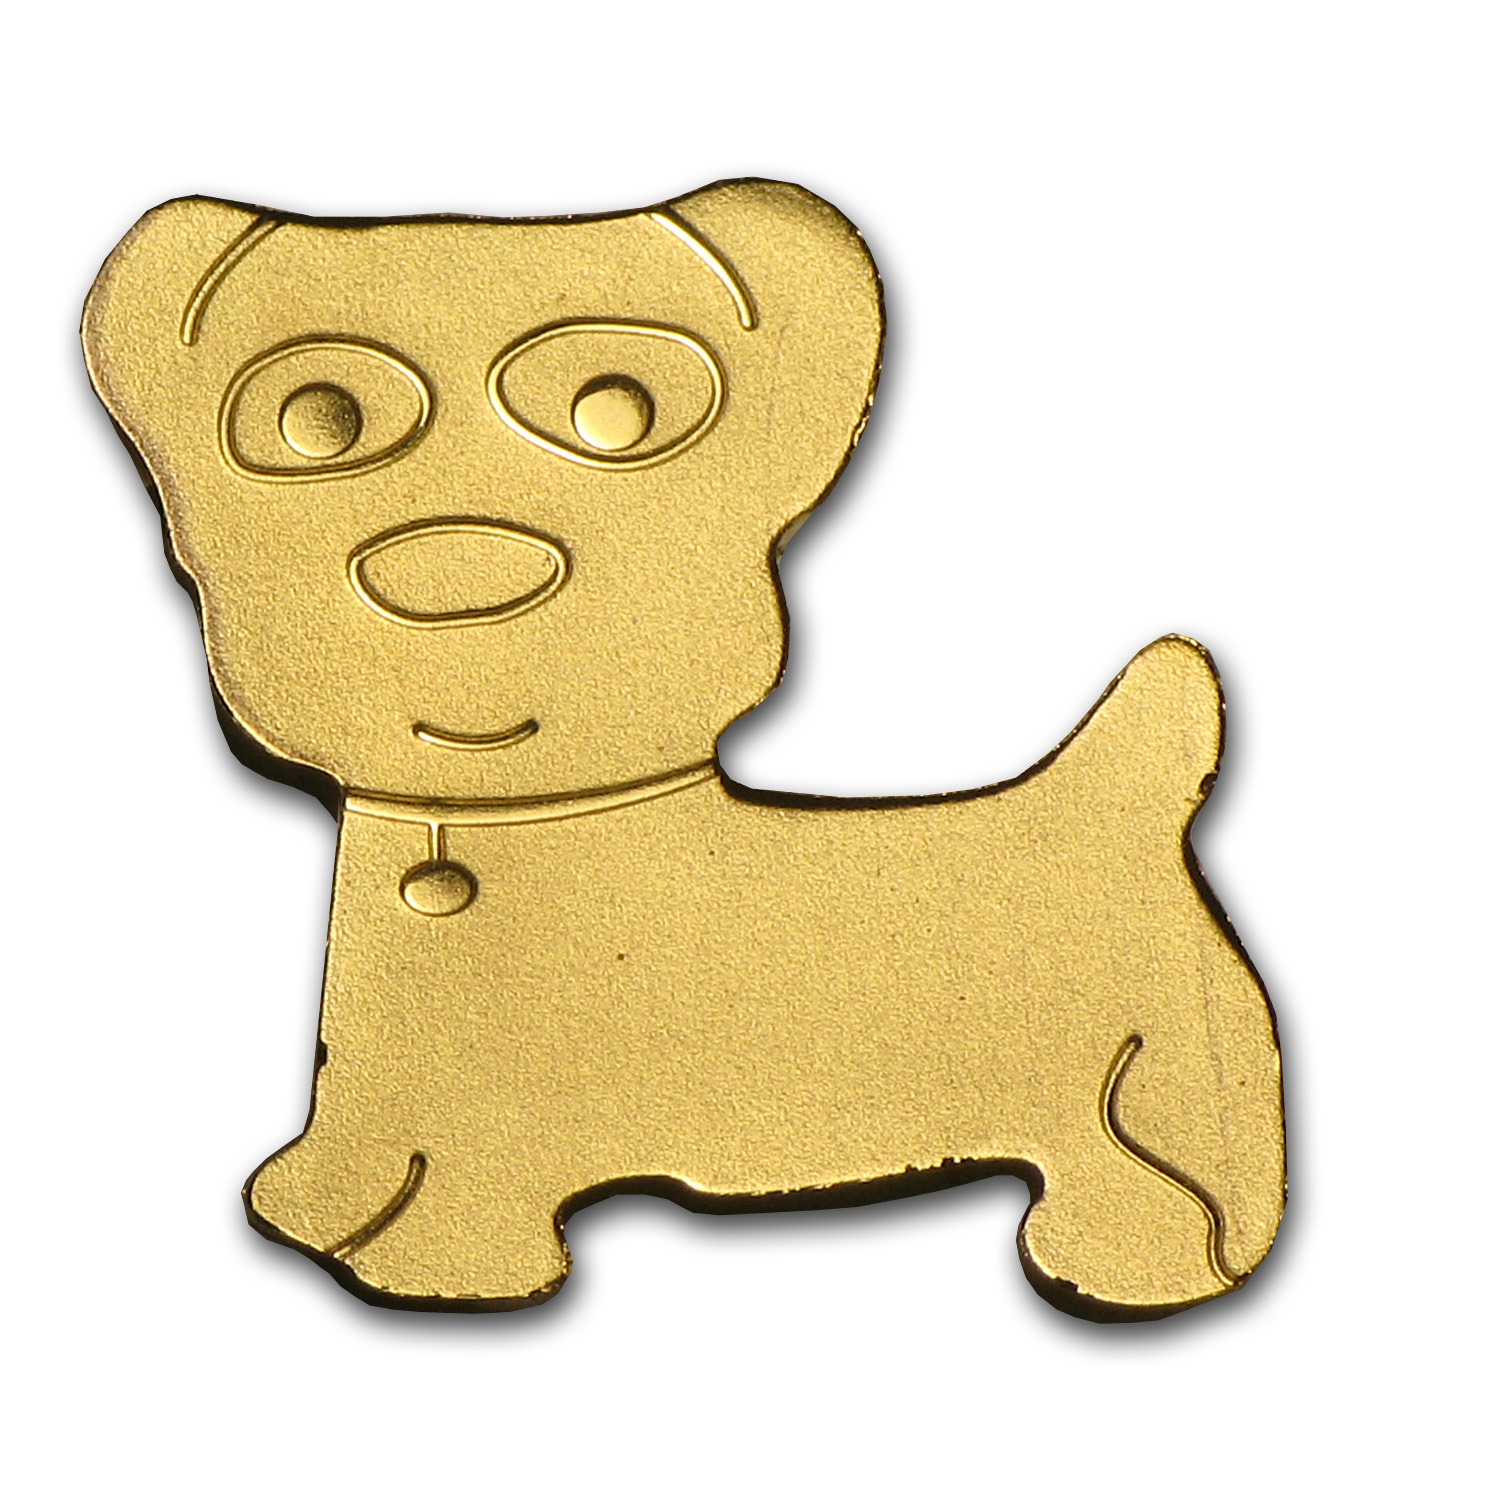 Palau 1/2 gram Gold $1 Golden Dog